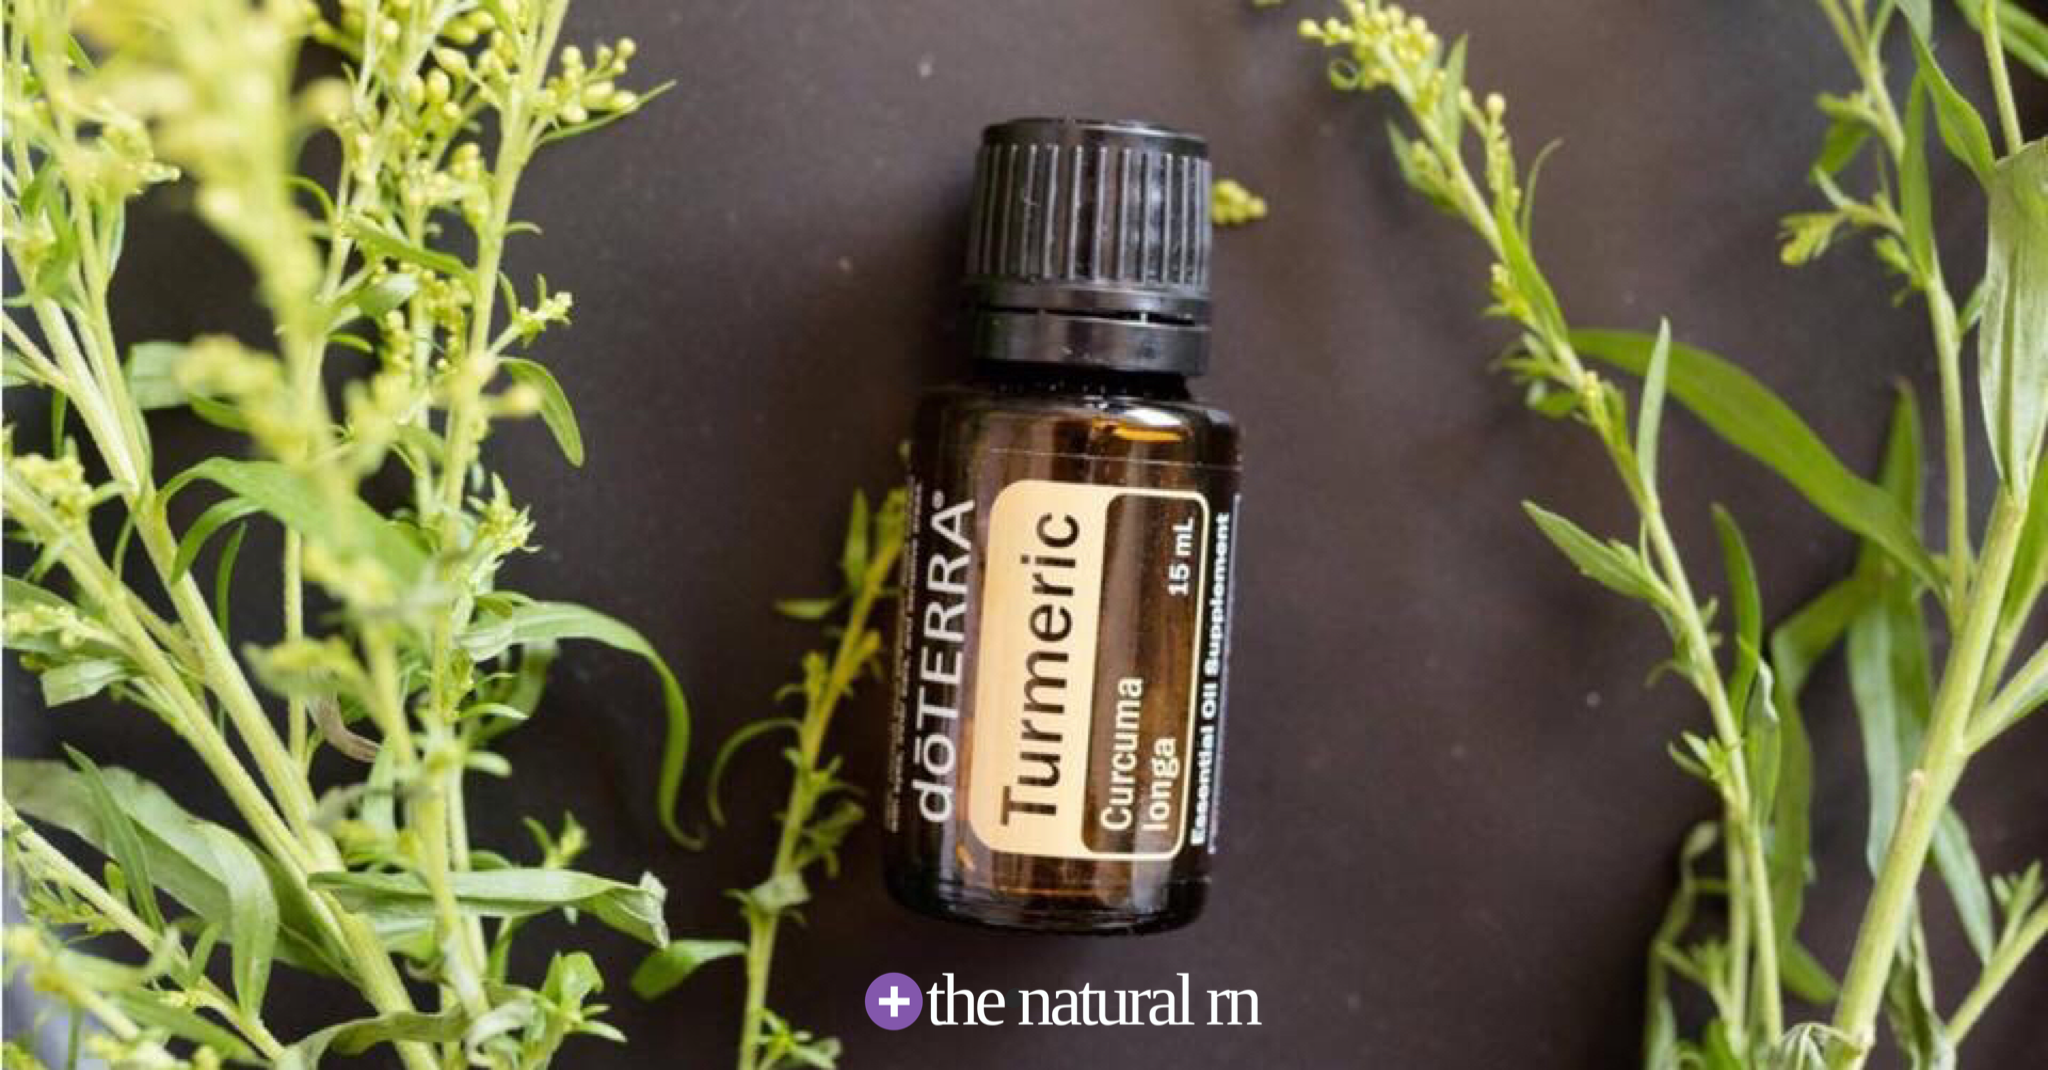 The many benefits of Turmeric essential oil are very exciting.